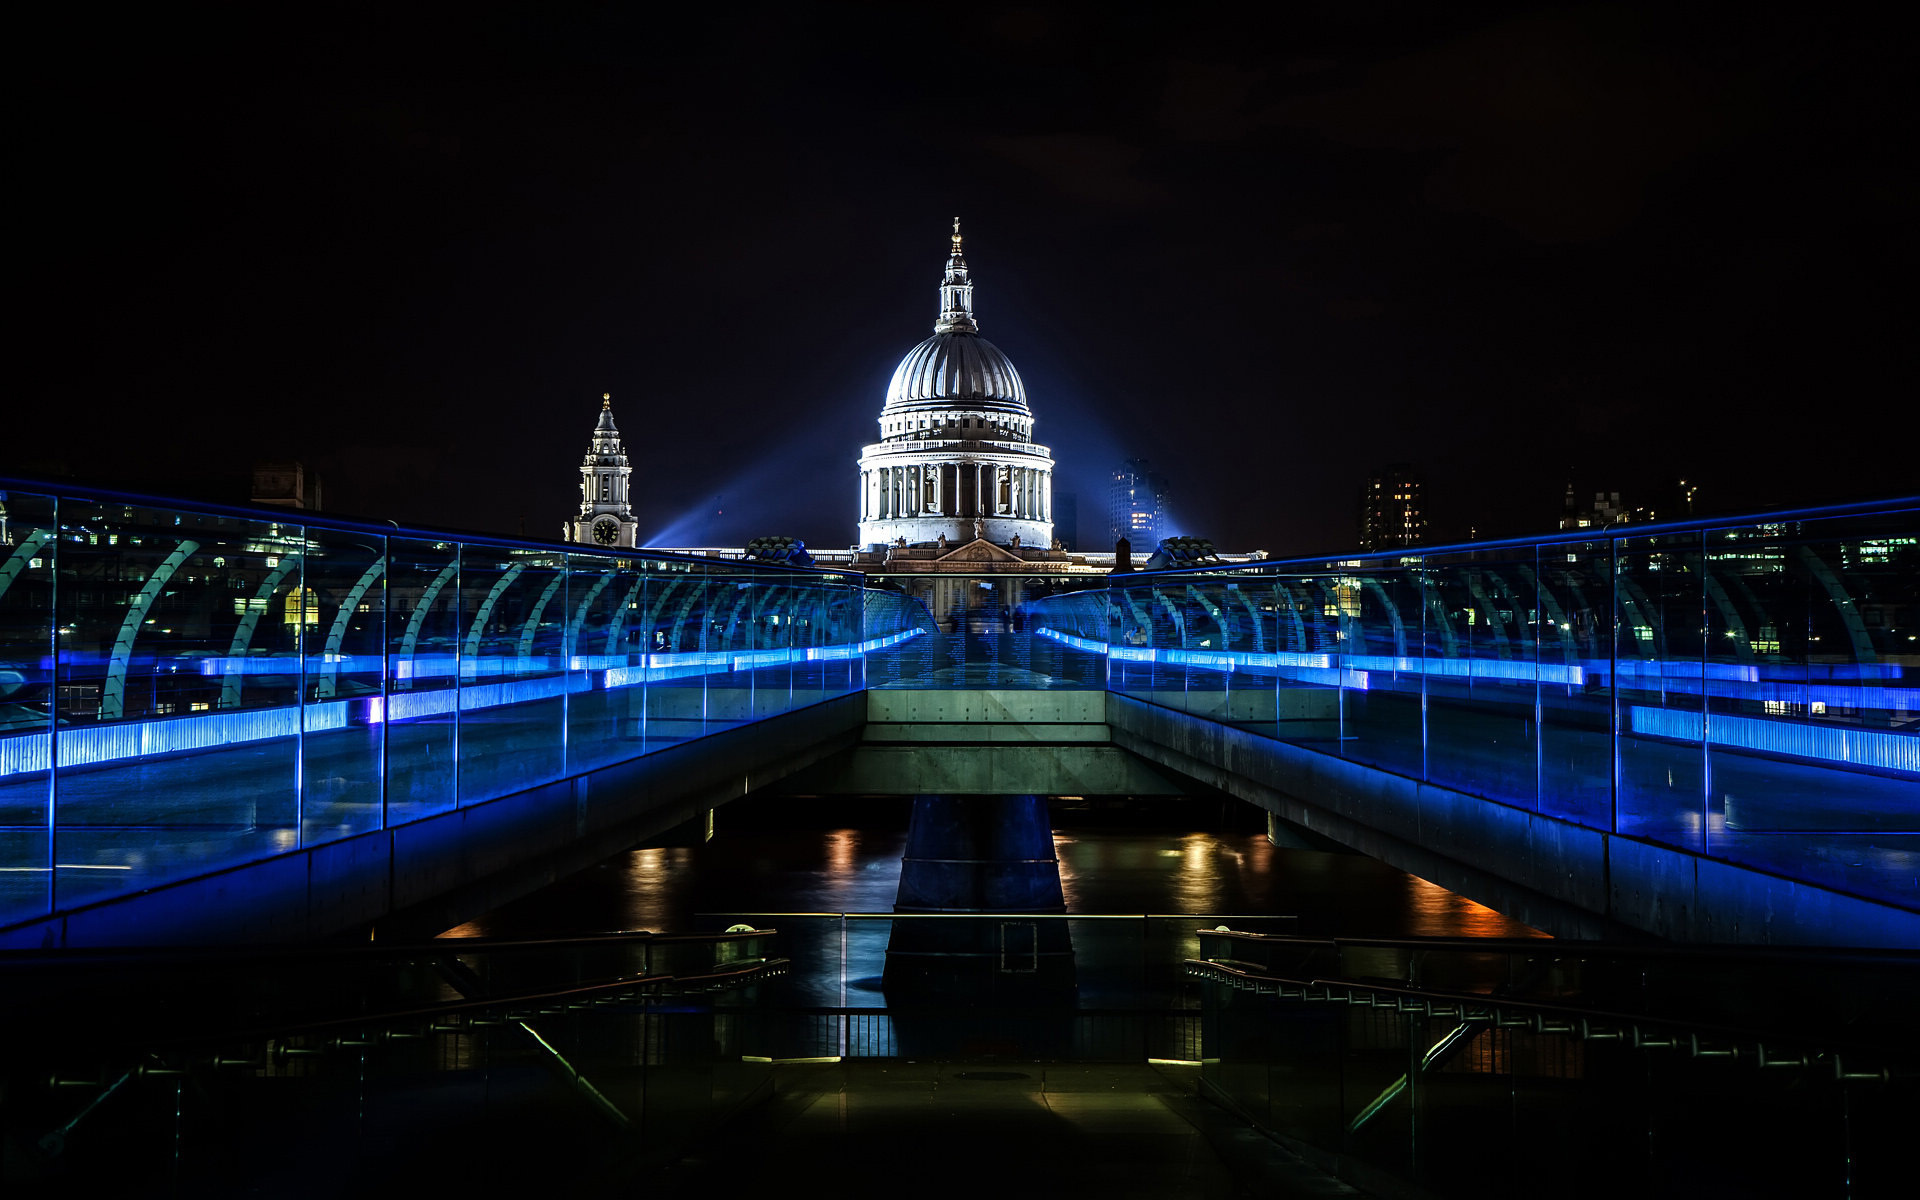 millenium bridge bridge england thames night